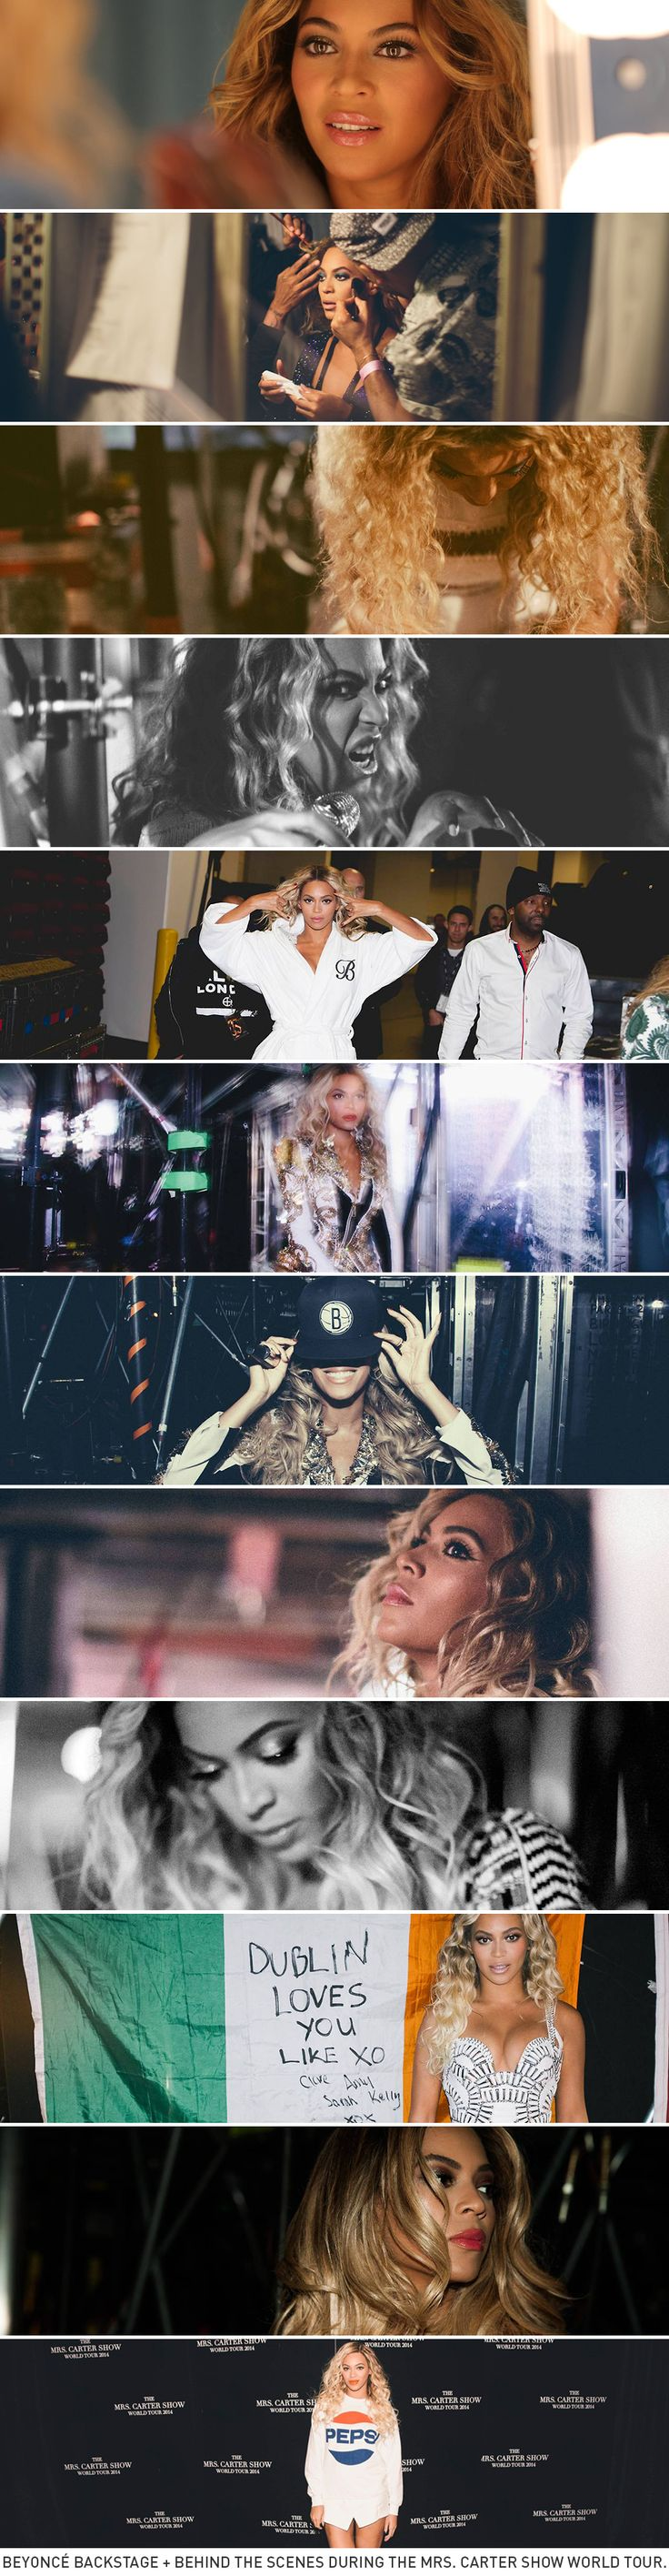 Beyoncé Backstage Memories at the Mrs Carter Show World Tour 2013/14